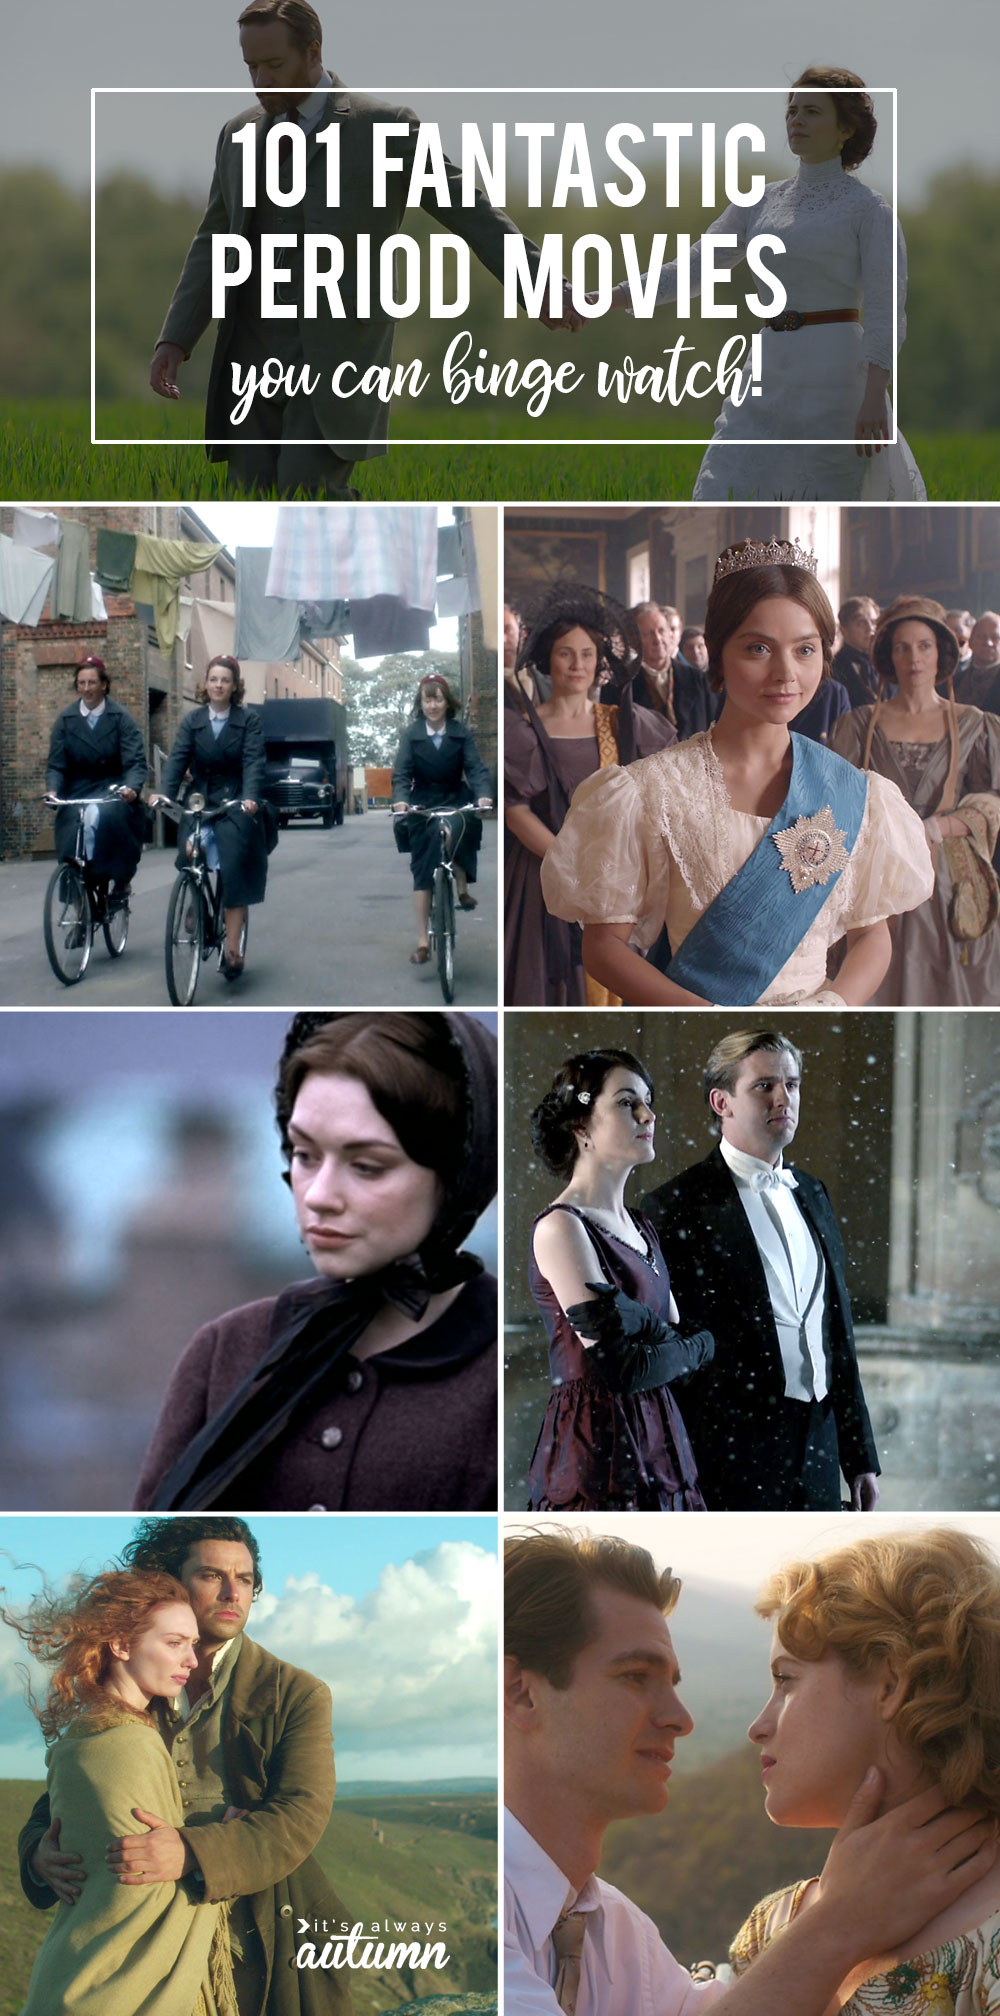 Collage of screenshots from favorite period movies